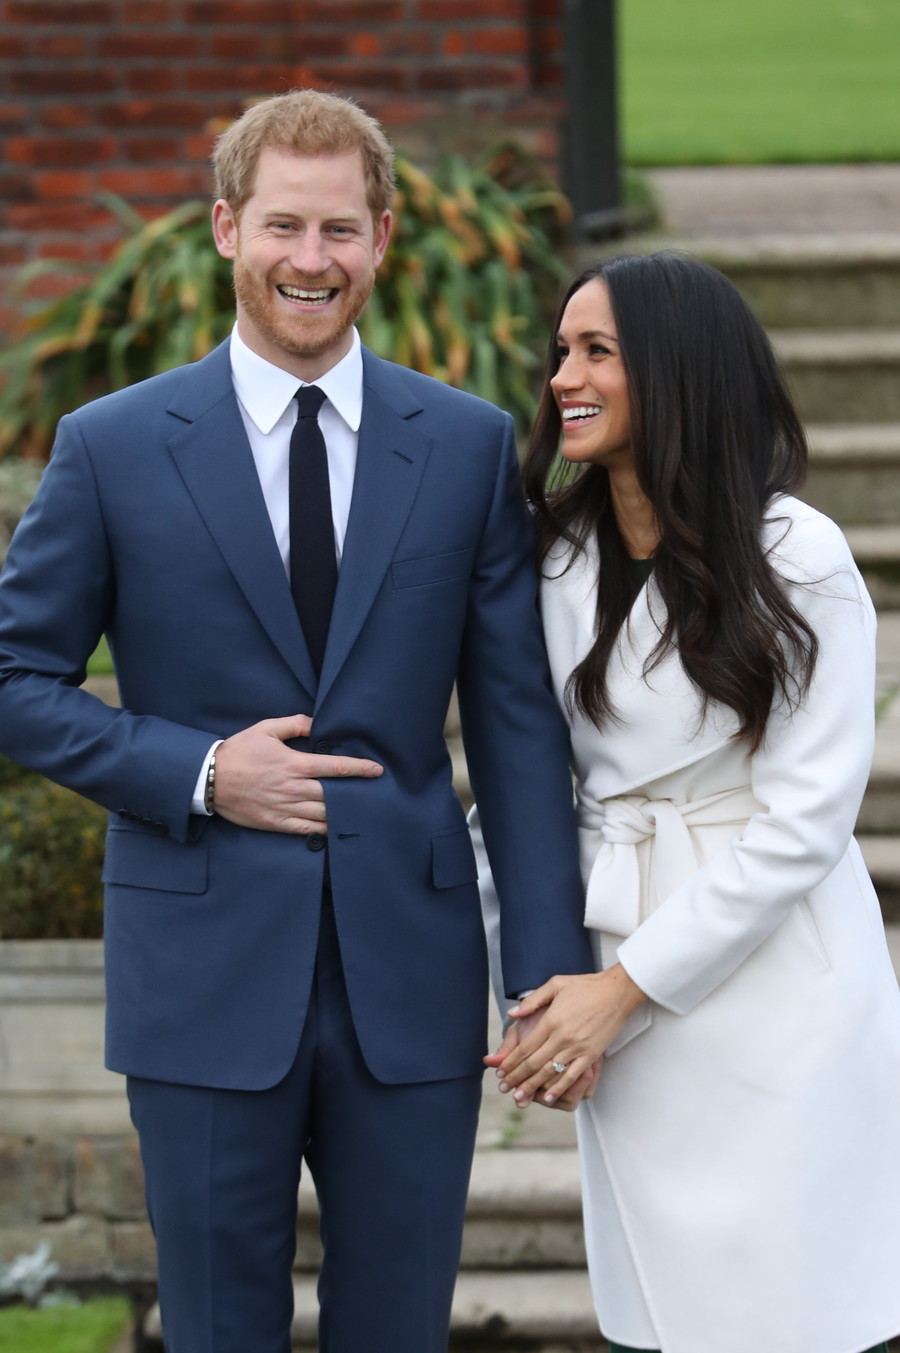 'No one cares': Backlash as Prince Harry announces he is about to marry a TV star